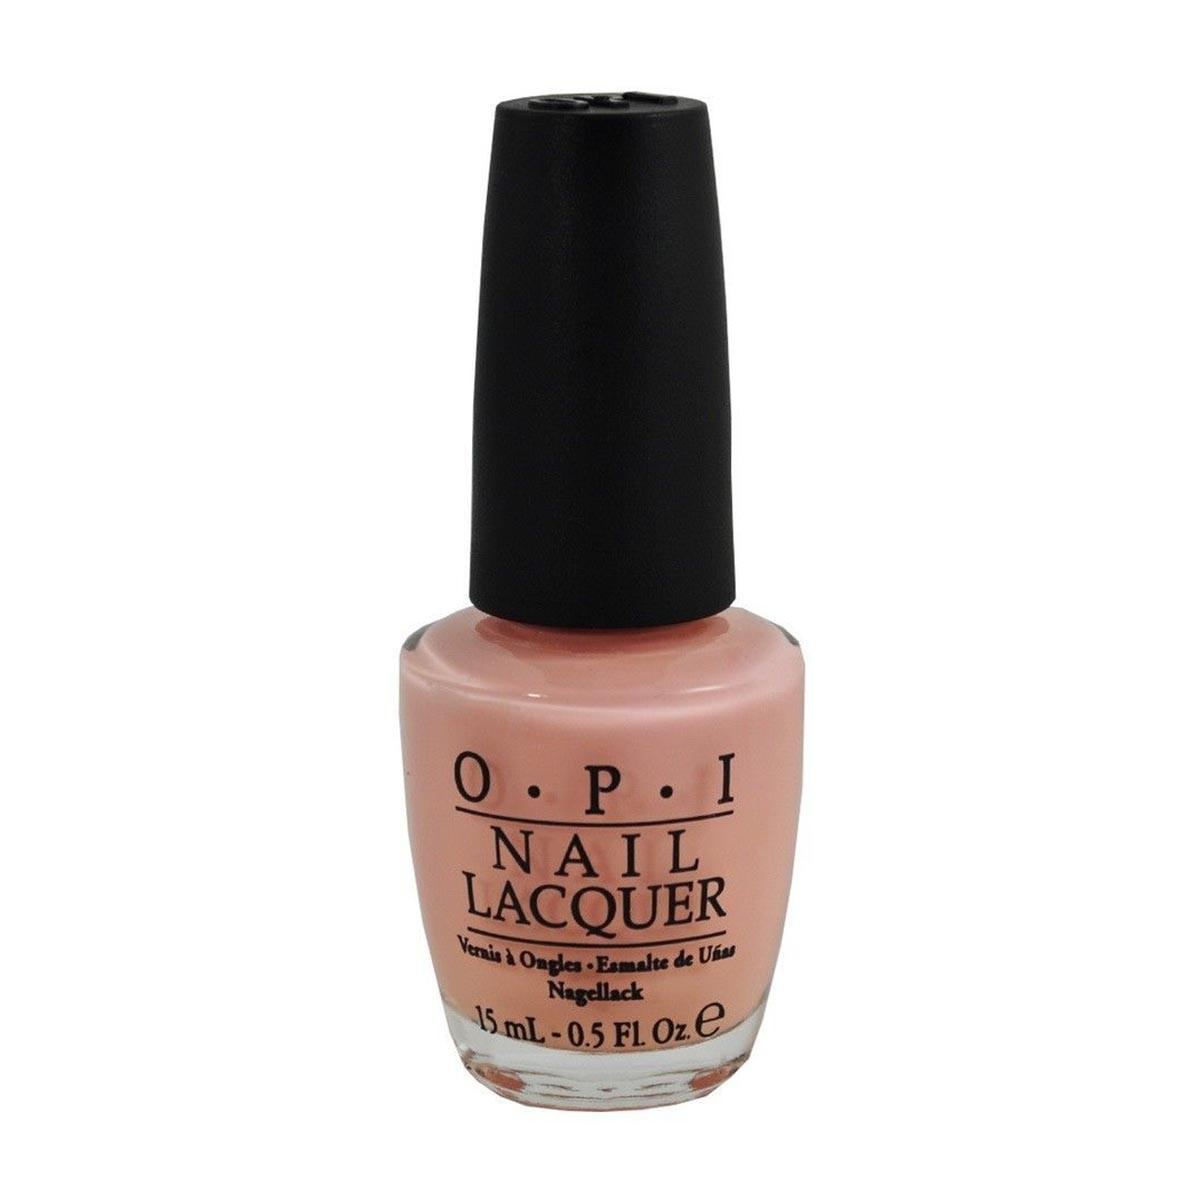 Opi fragrances Nail Lacquer Nls81 Hopelessly In Love